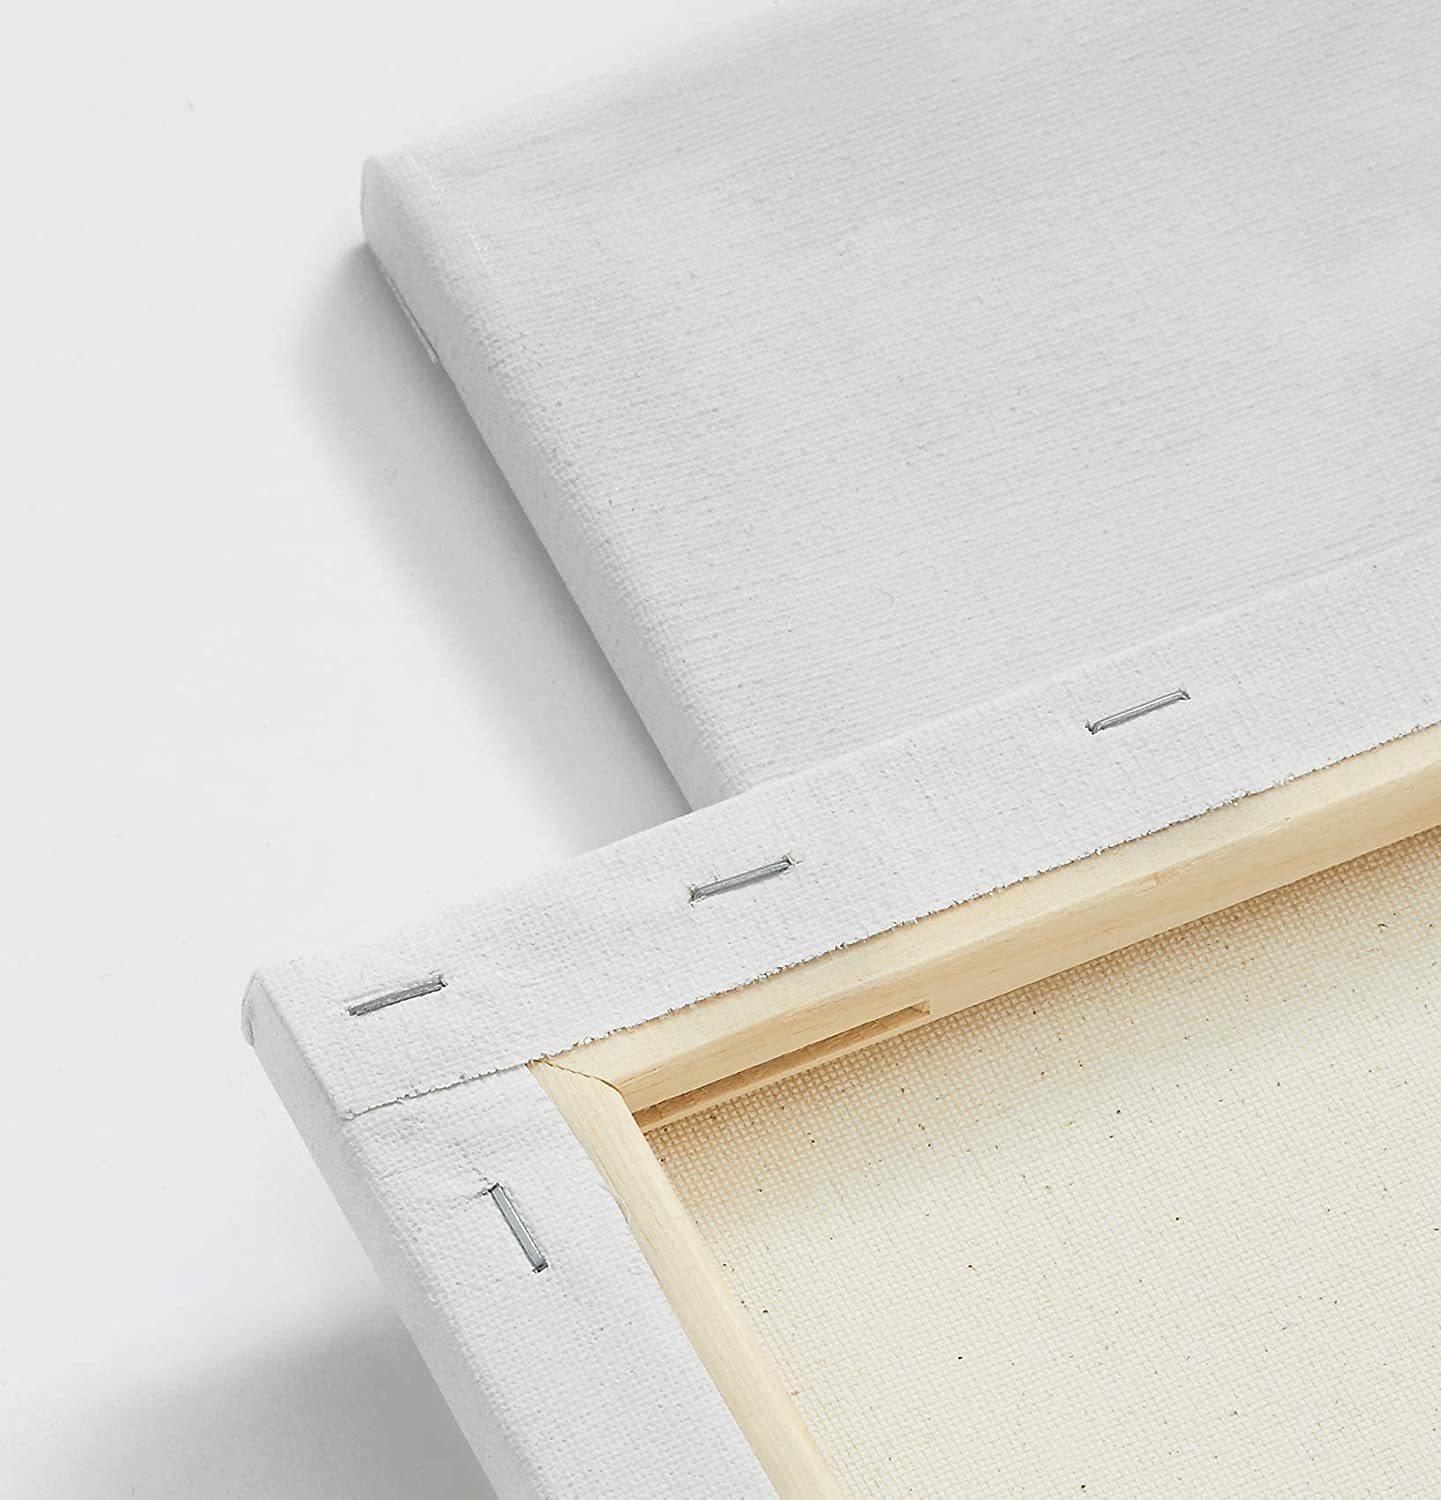 miniature 29 - Americanflat Stretched Canvas in White 100% Cotton Wooden Frames & Acid Free